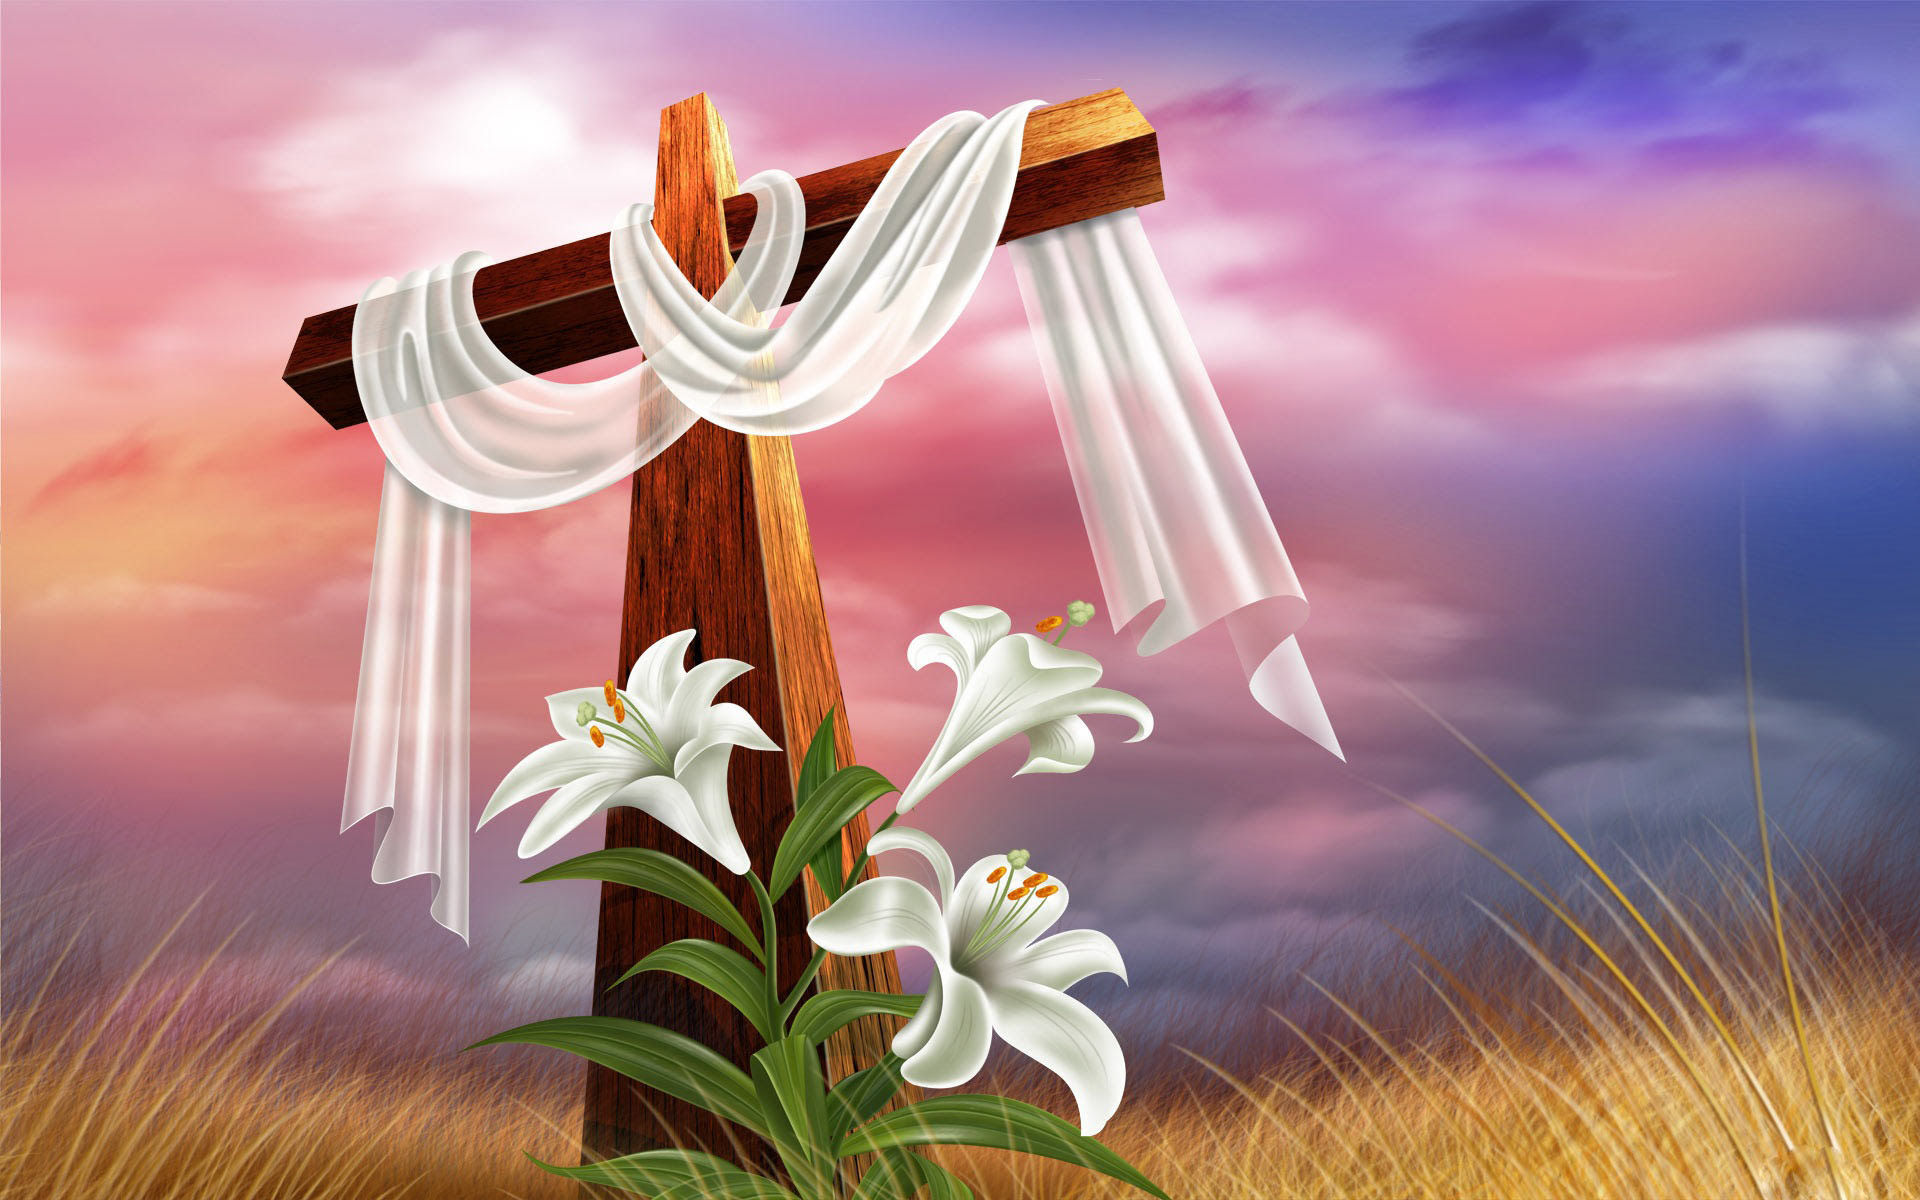 Jesus Resurrection Wallpaper 54 Images